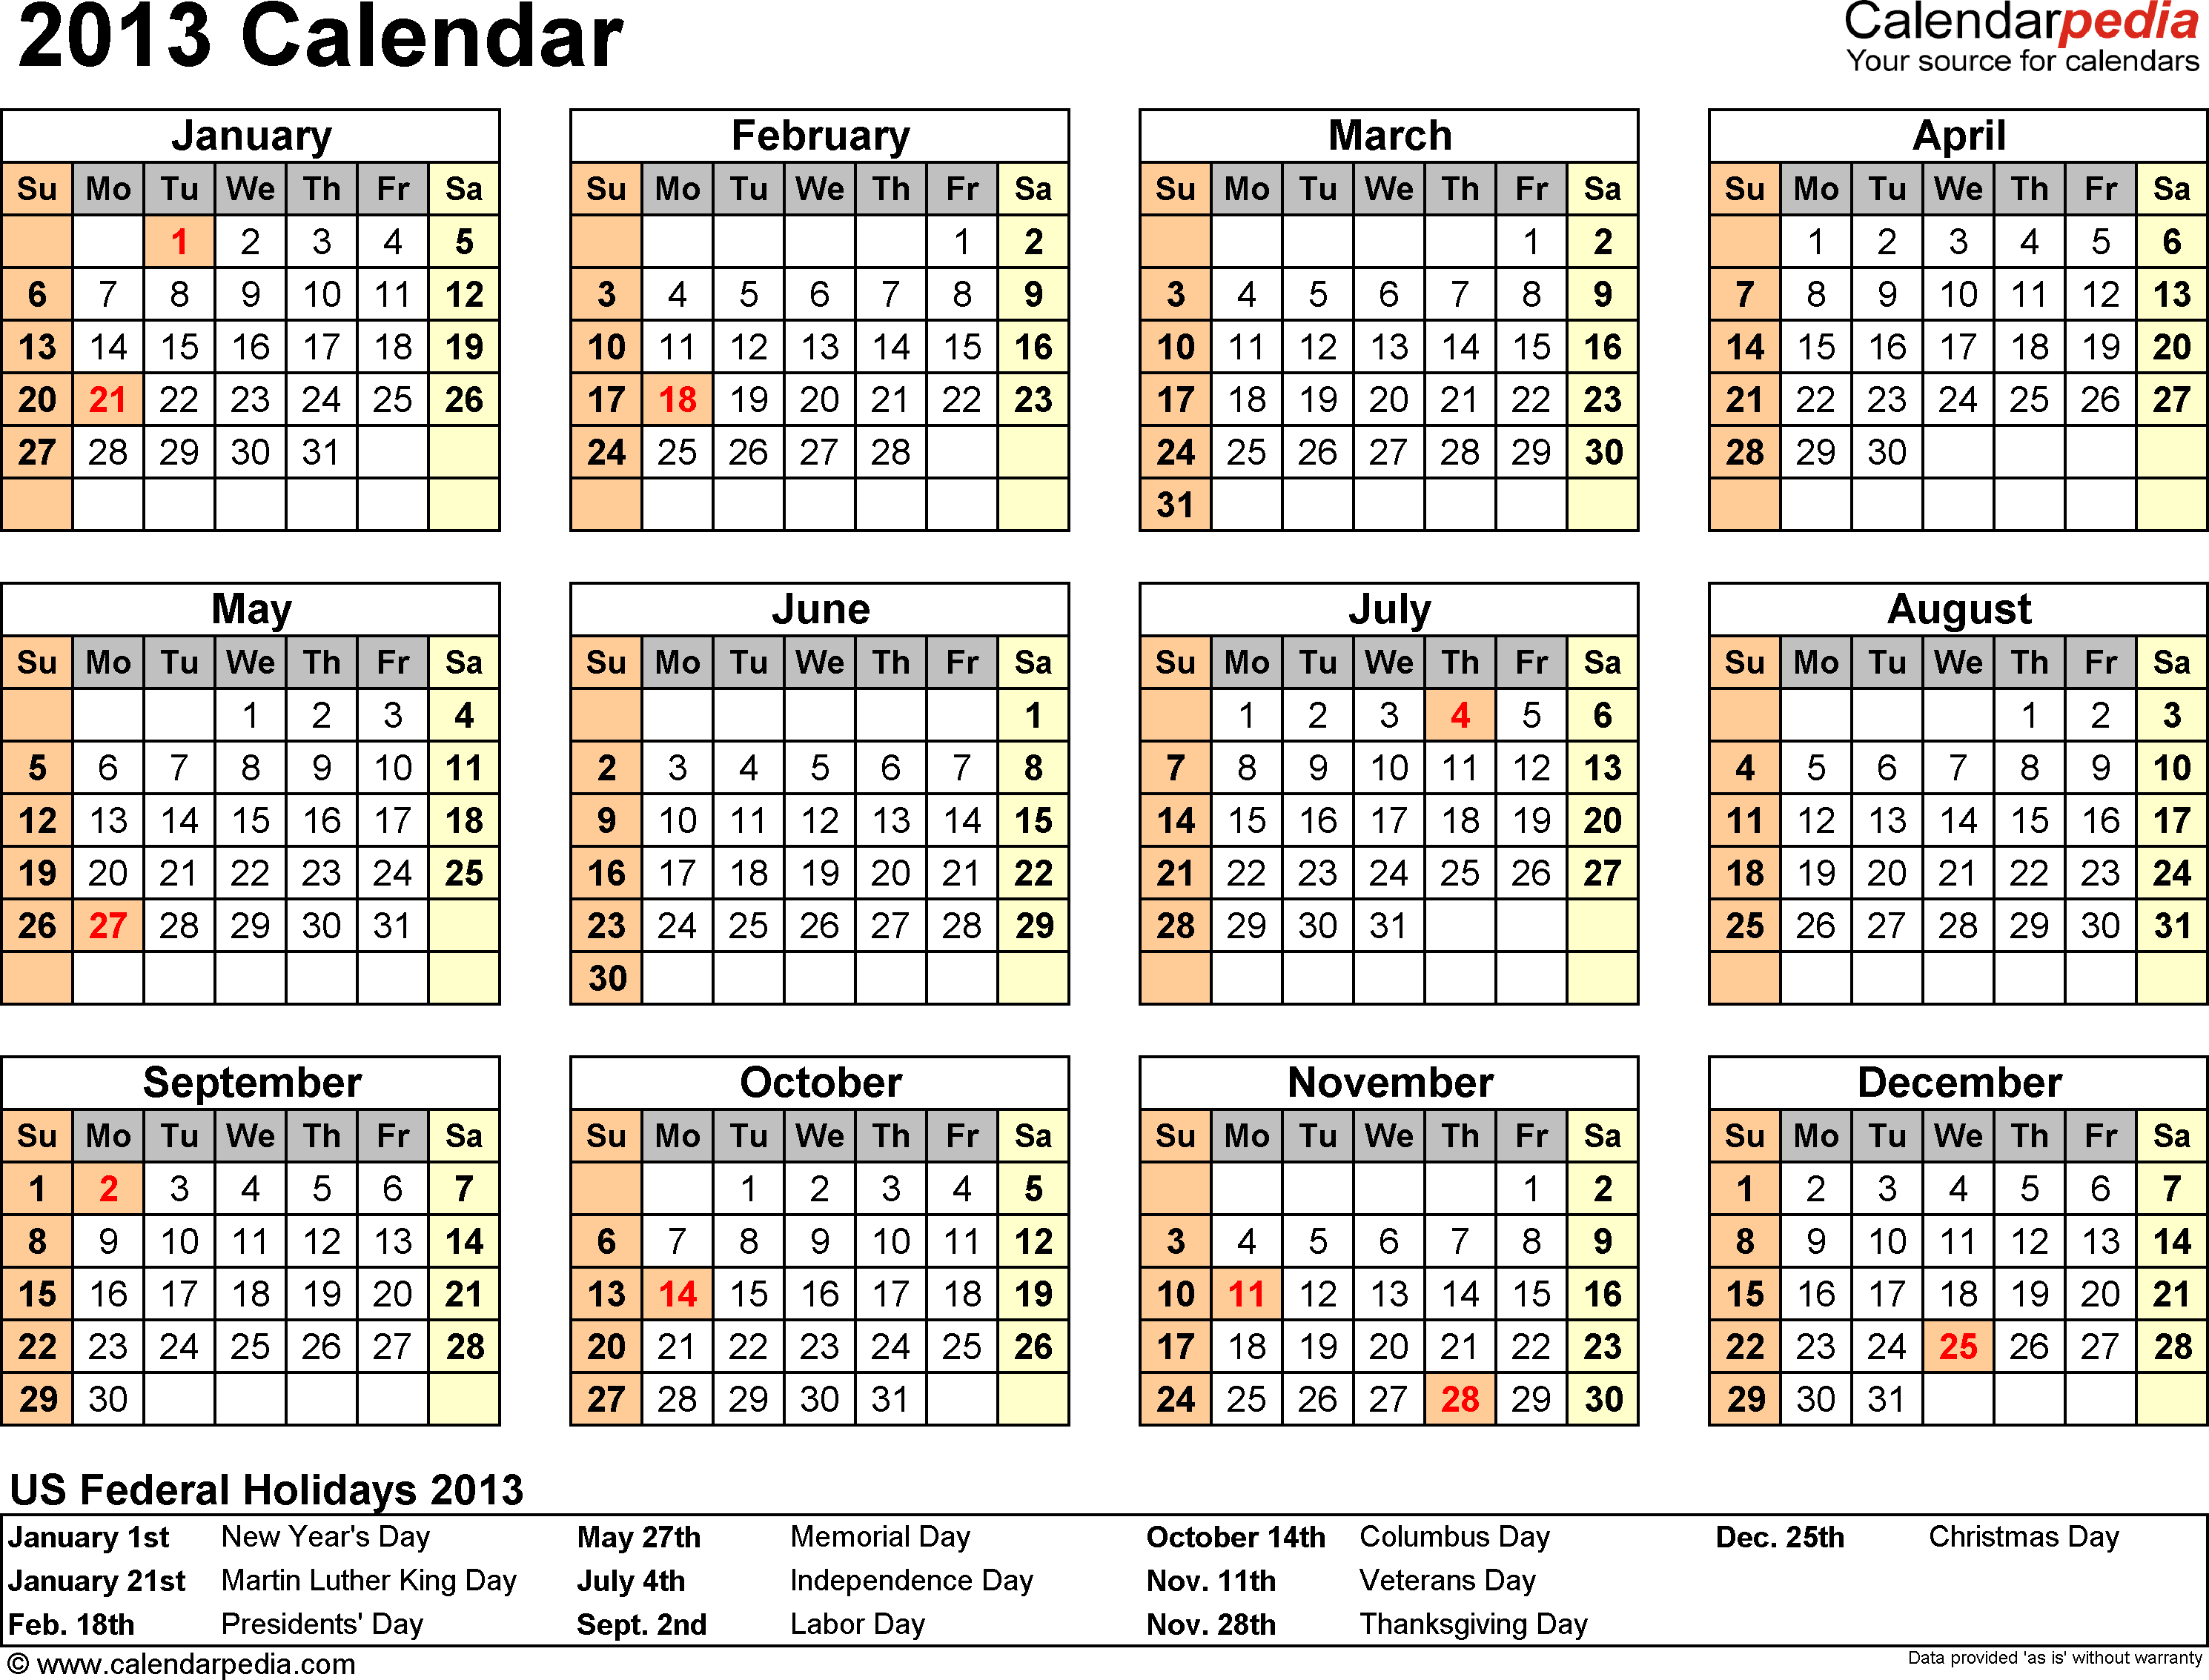 Download PDF template for 2013 calendar template 7: year at a glance, 1 page